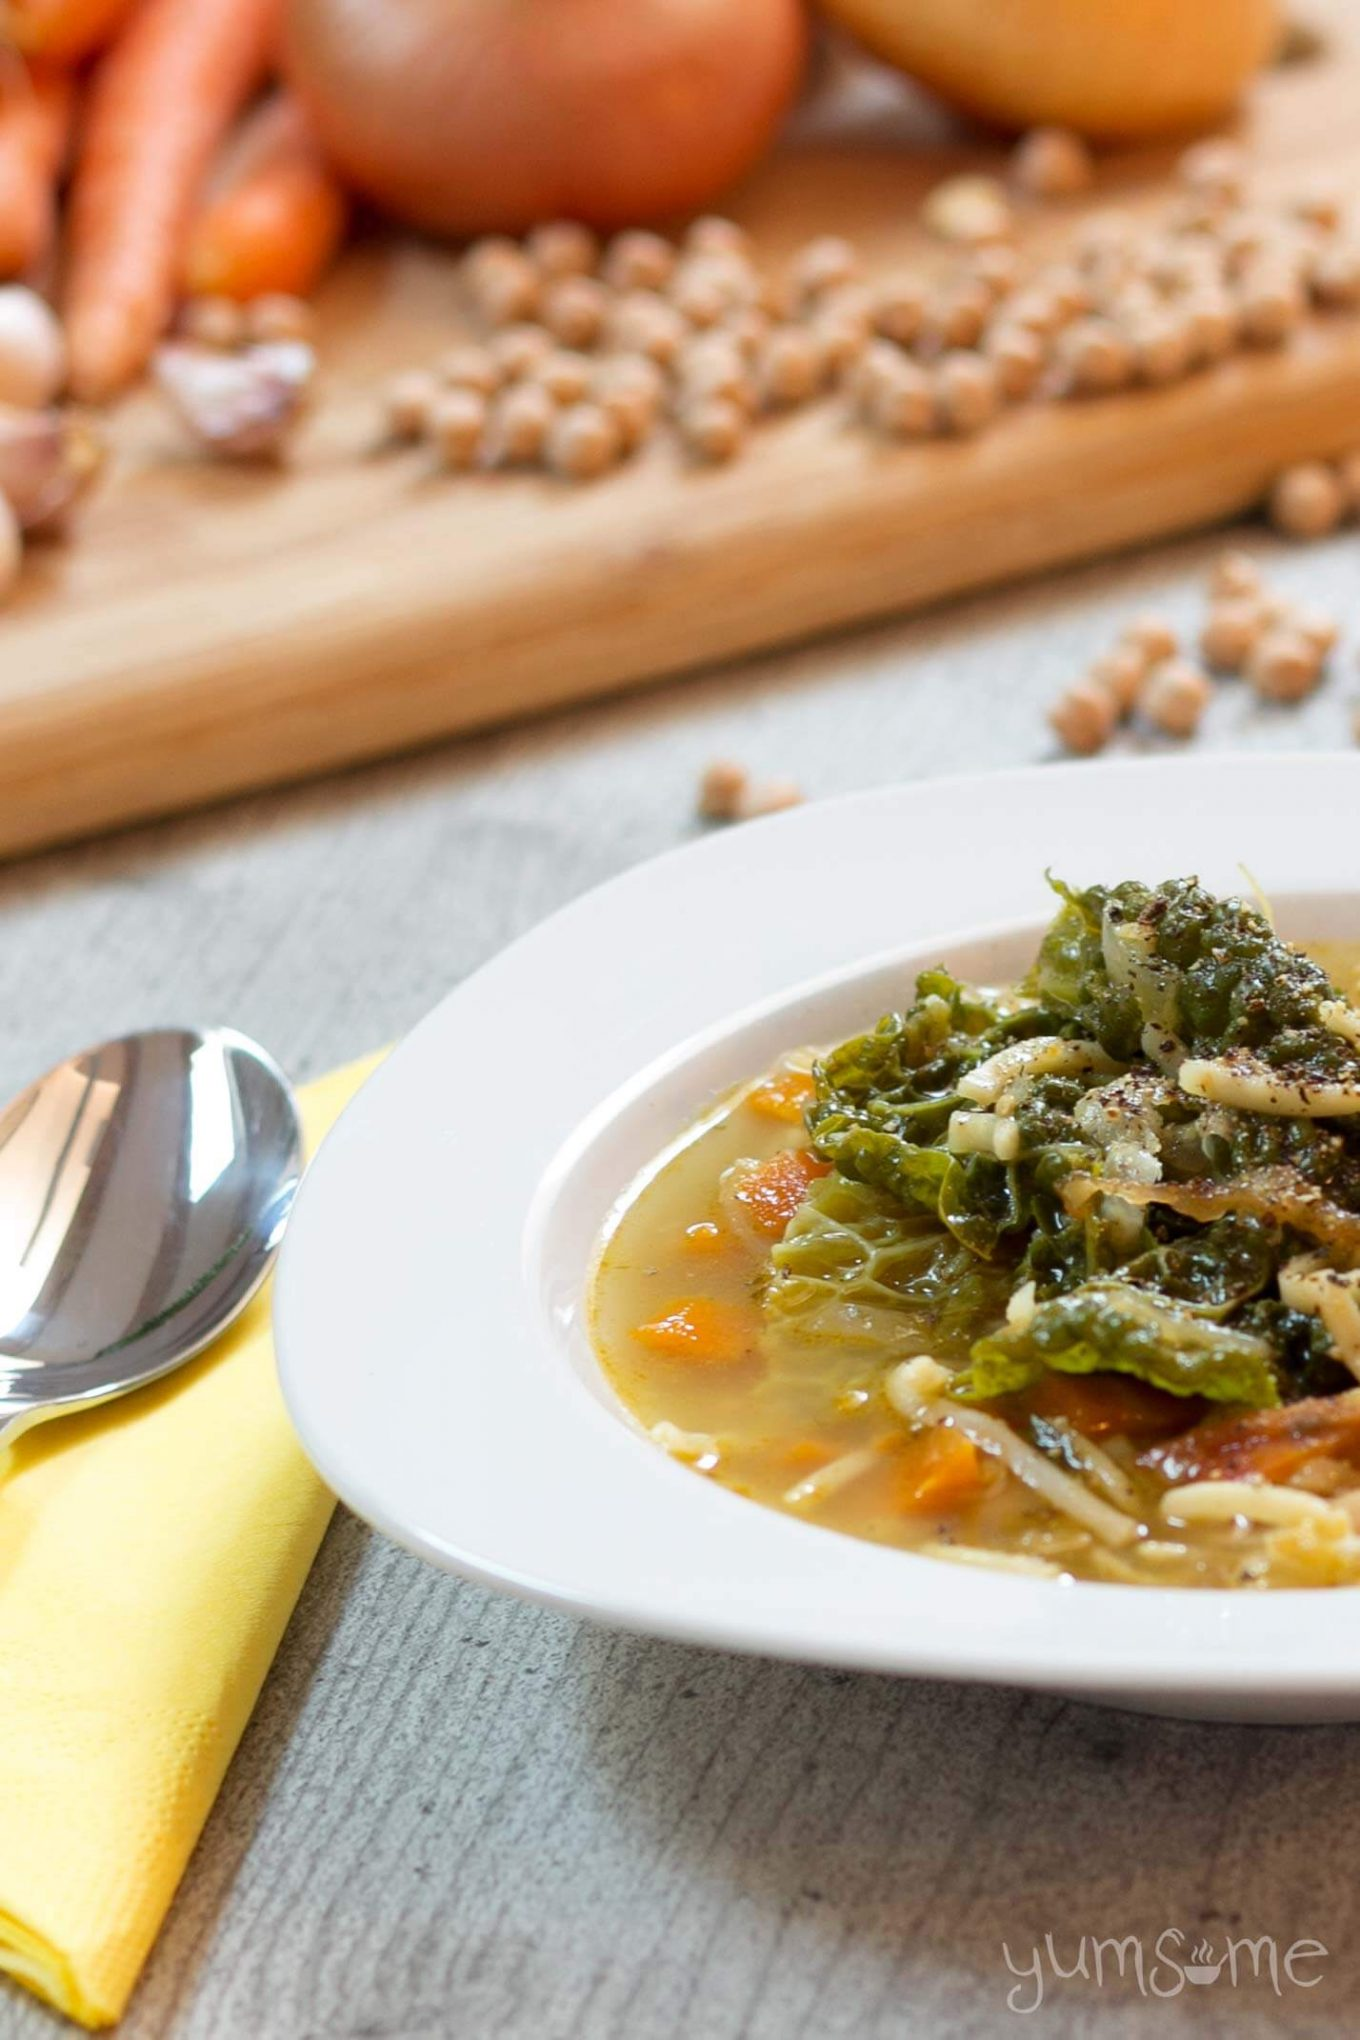 Warming, filling, simple, and cheap - you can't go wrong with this traditional, veggie-packed Tuscan bean soup. | yumsome.com